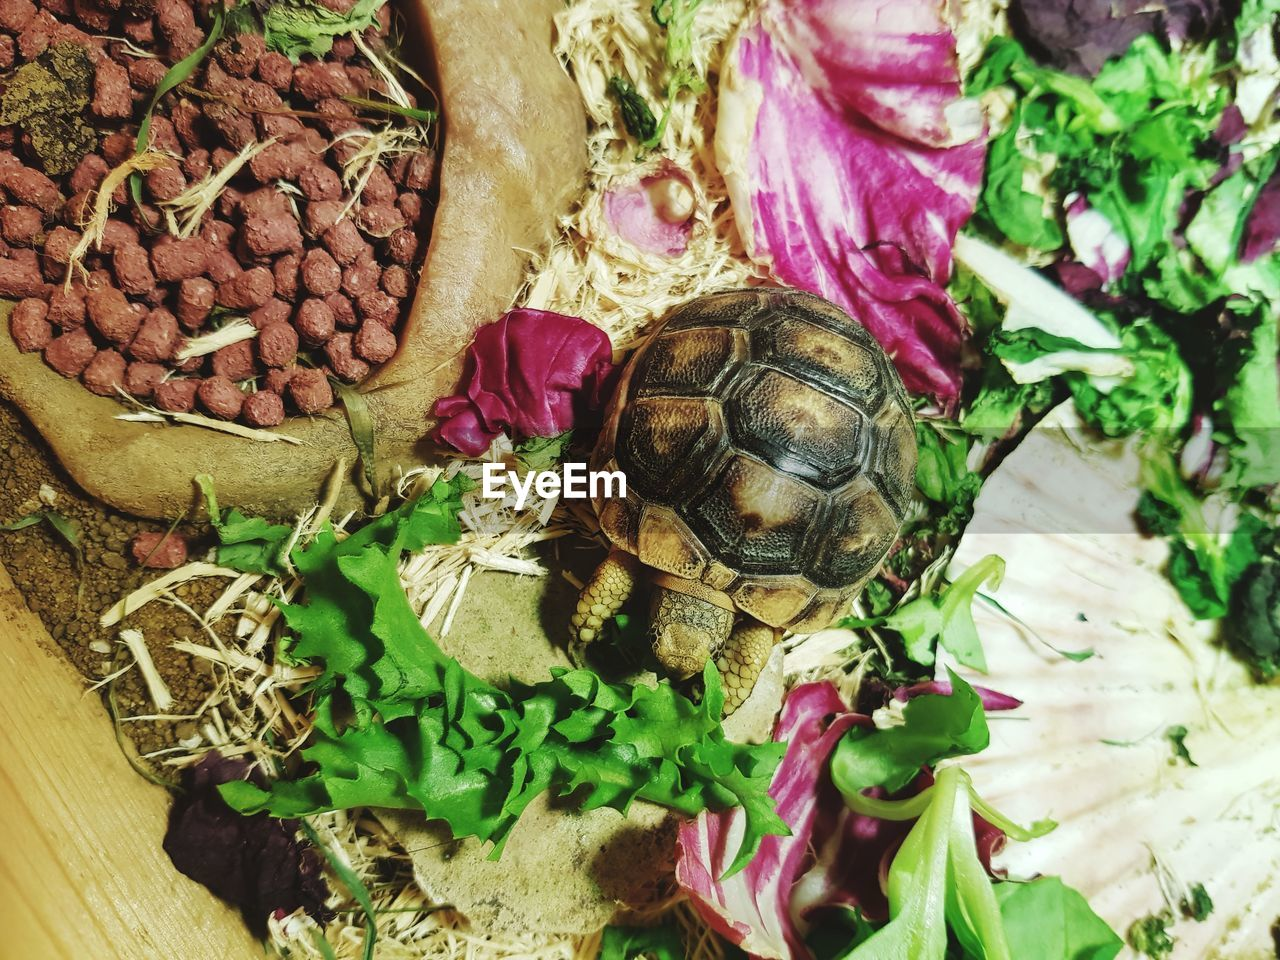 turtle, animal wildlife, reptile, animal, animal themes, animals in the wild, food and drink, no people, close-up, vertebrate, freshness, high angle view, food, nature, vegetable, group of animals, plant, shell, healthy eating, common beet